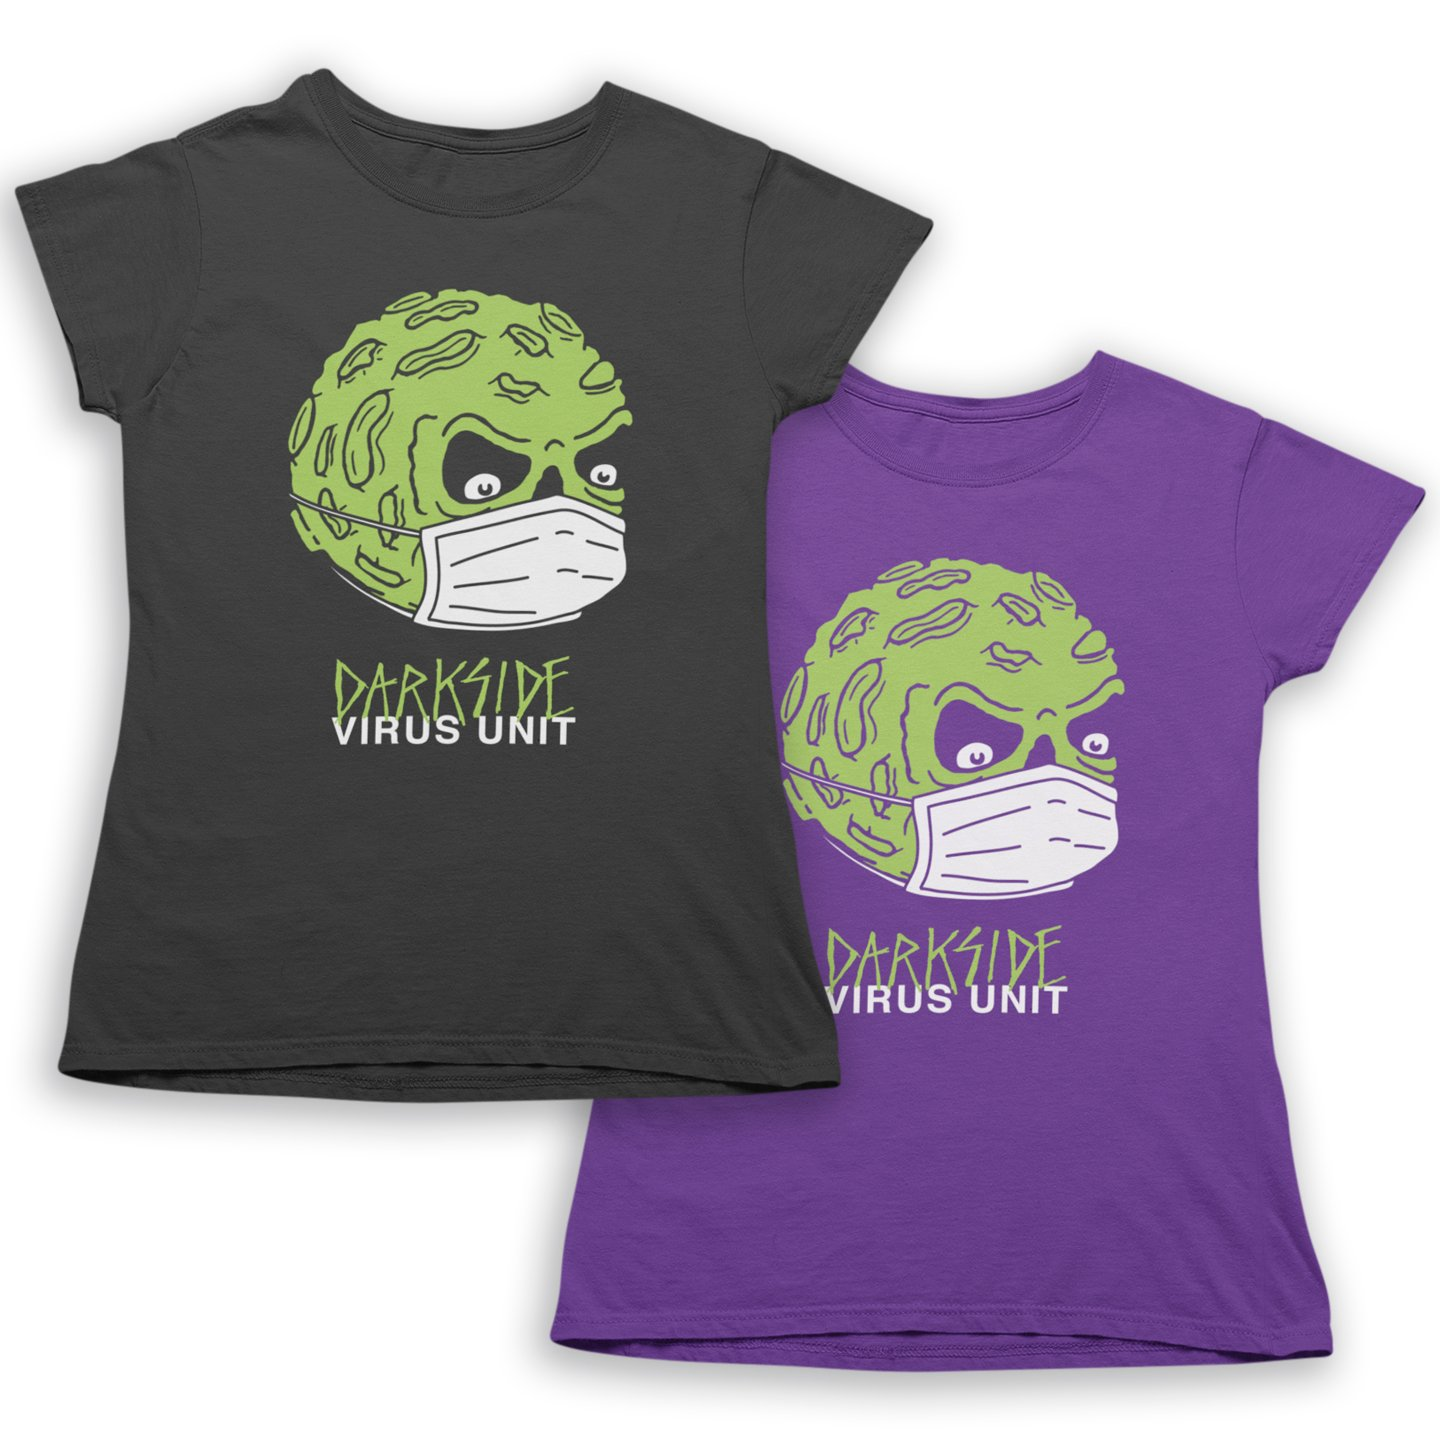 Darkside Angry Moon Virus Unit Women's Short Sleeve Tee (Multiple Color Options)